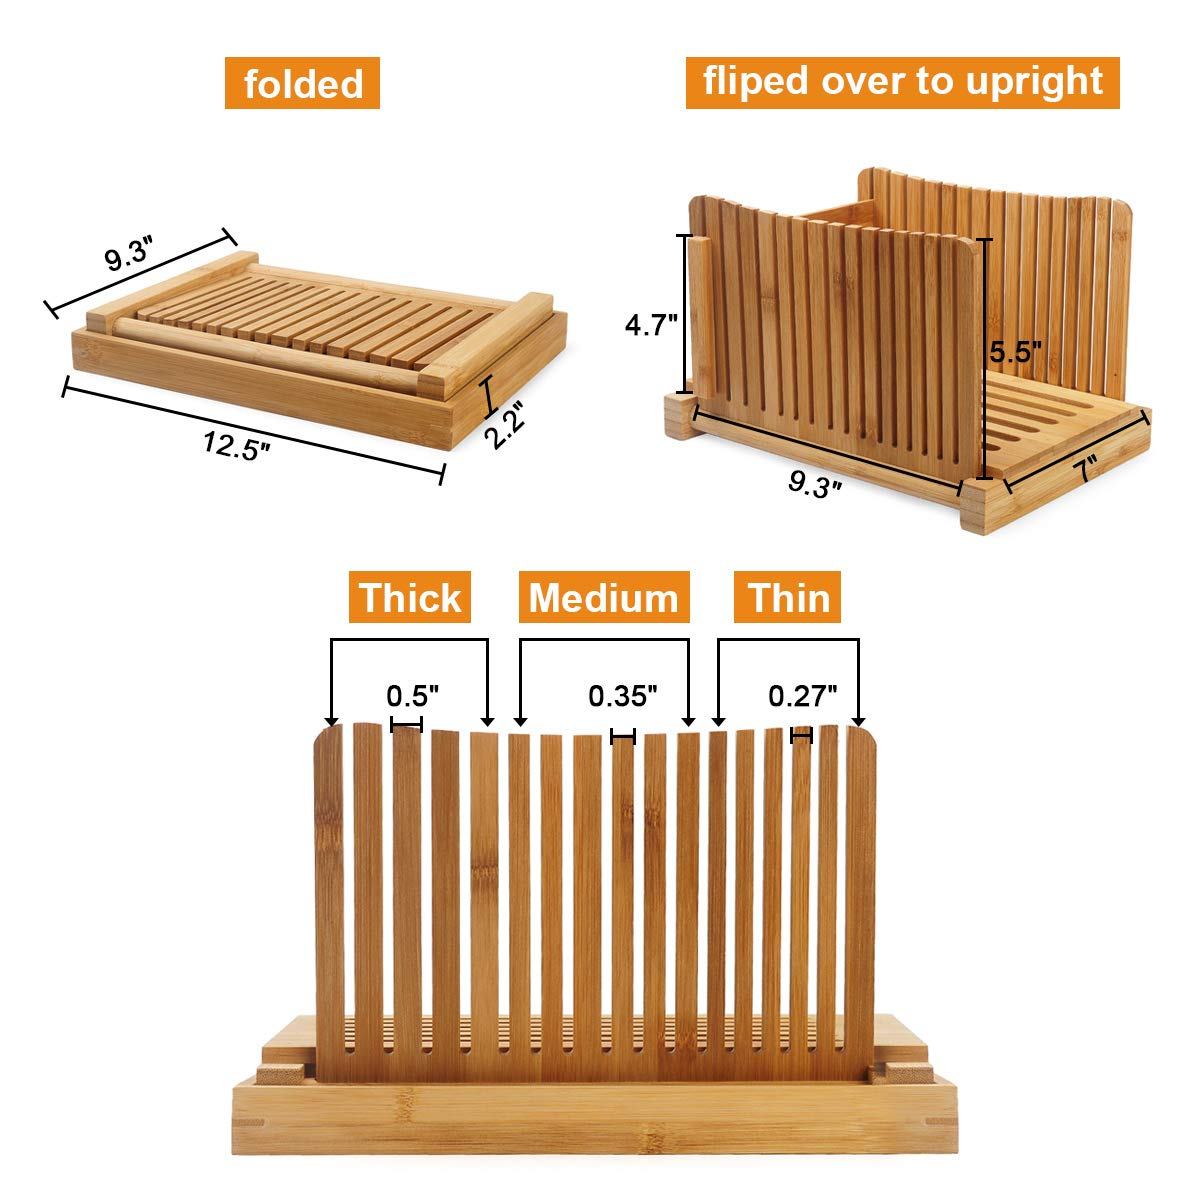 AKUNSZ Bamboo Bread Slicer Guide with Crumb Catcher, Adjustable Bread Loaf Slicer Foldable Bread Cutter Slicer - Thickness Adjustable 1/4'',3/8'',1/2''(Assembled Size 5.5''x9.3''x7'') by AKUNSZ (Image #3)